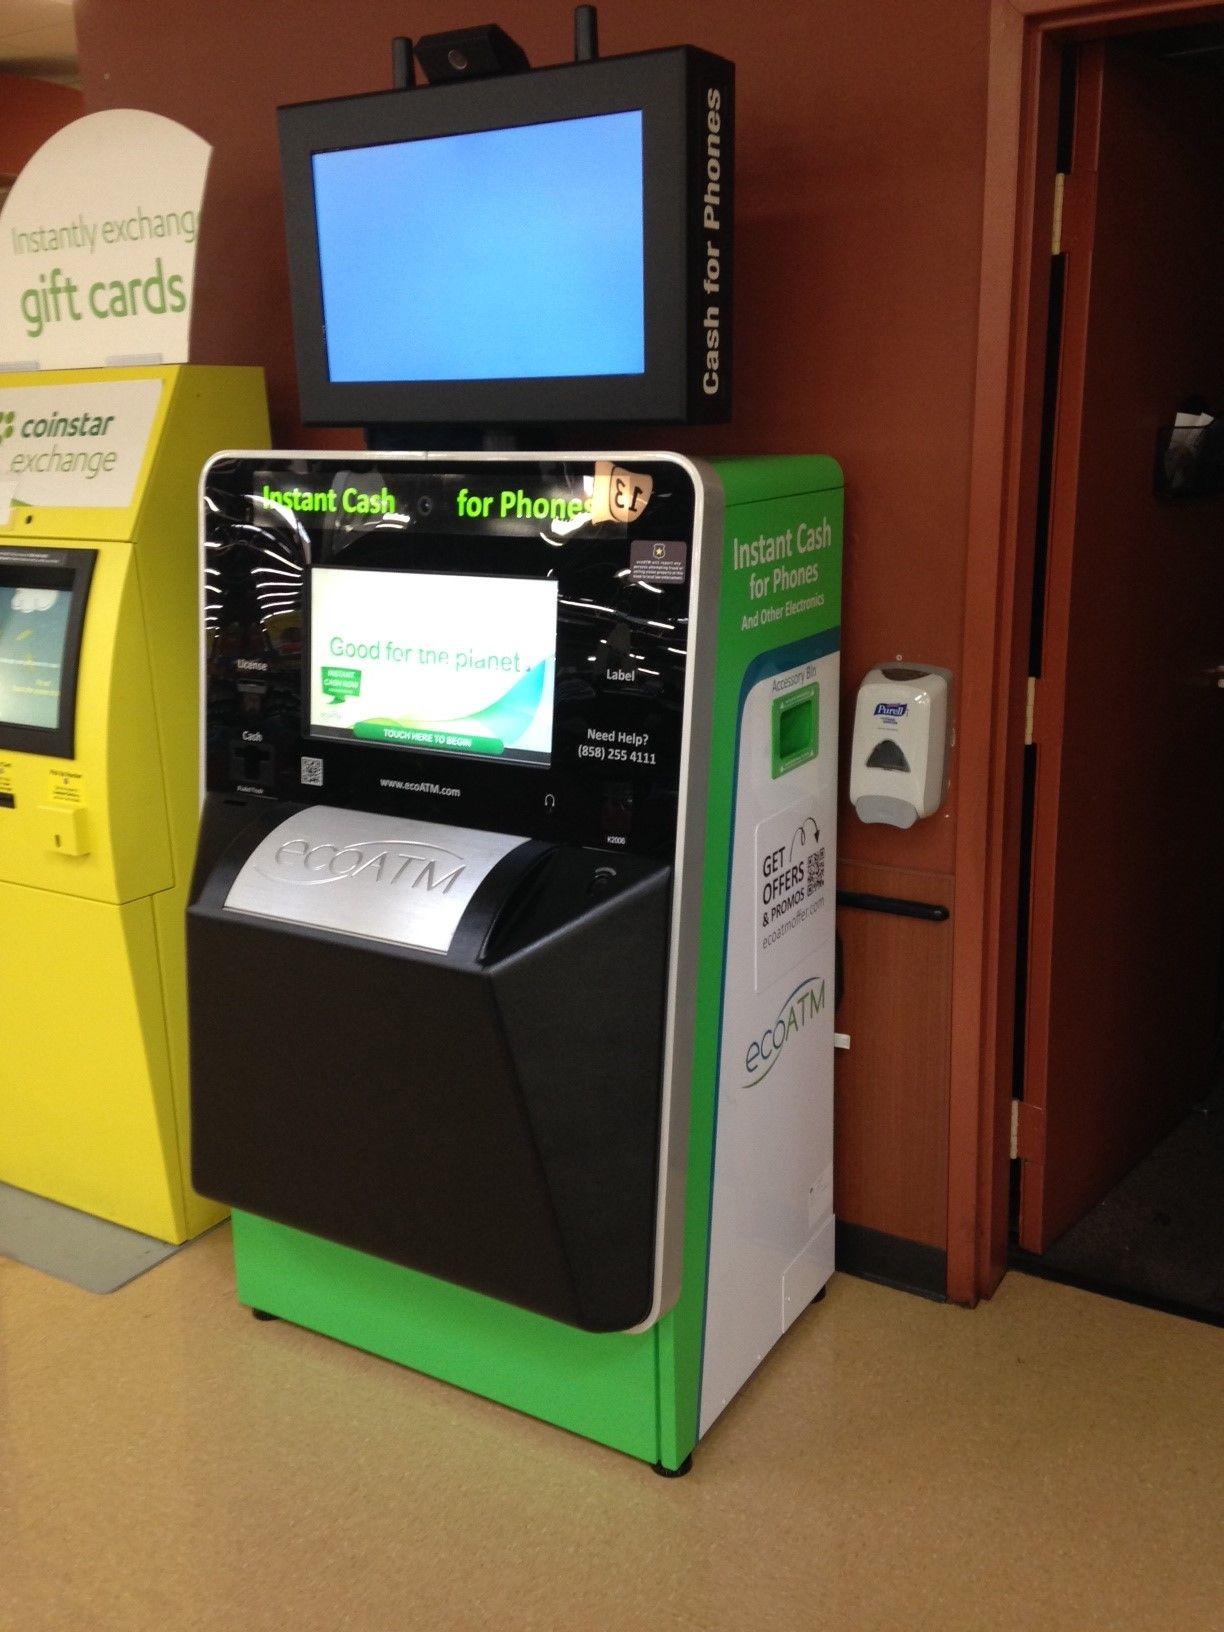 This ecoATM kiosk can be found at the Giant Eagle on W 117th Street